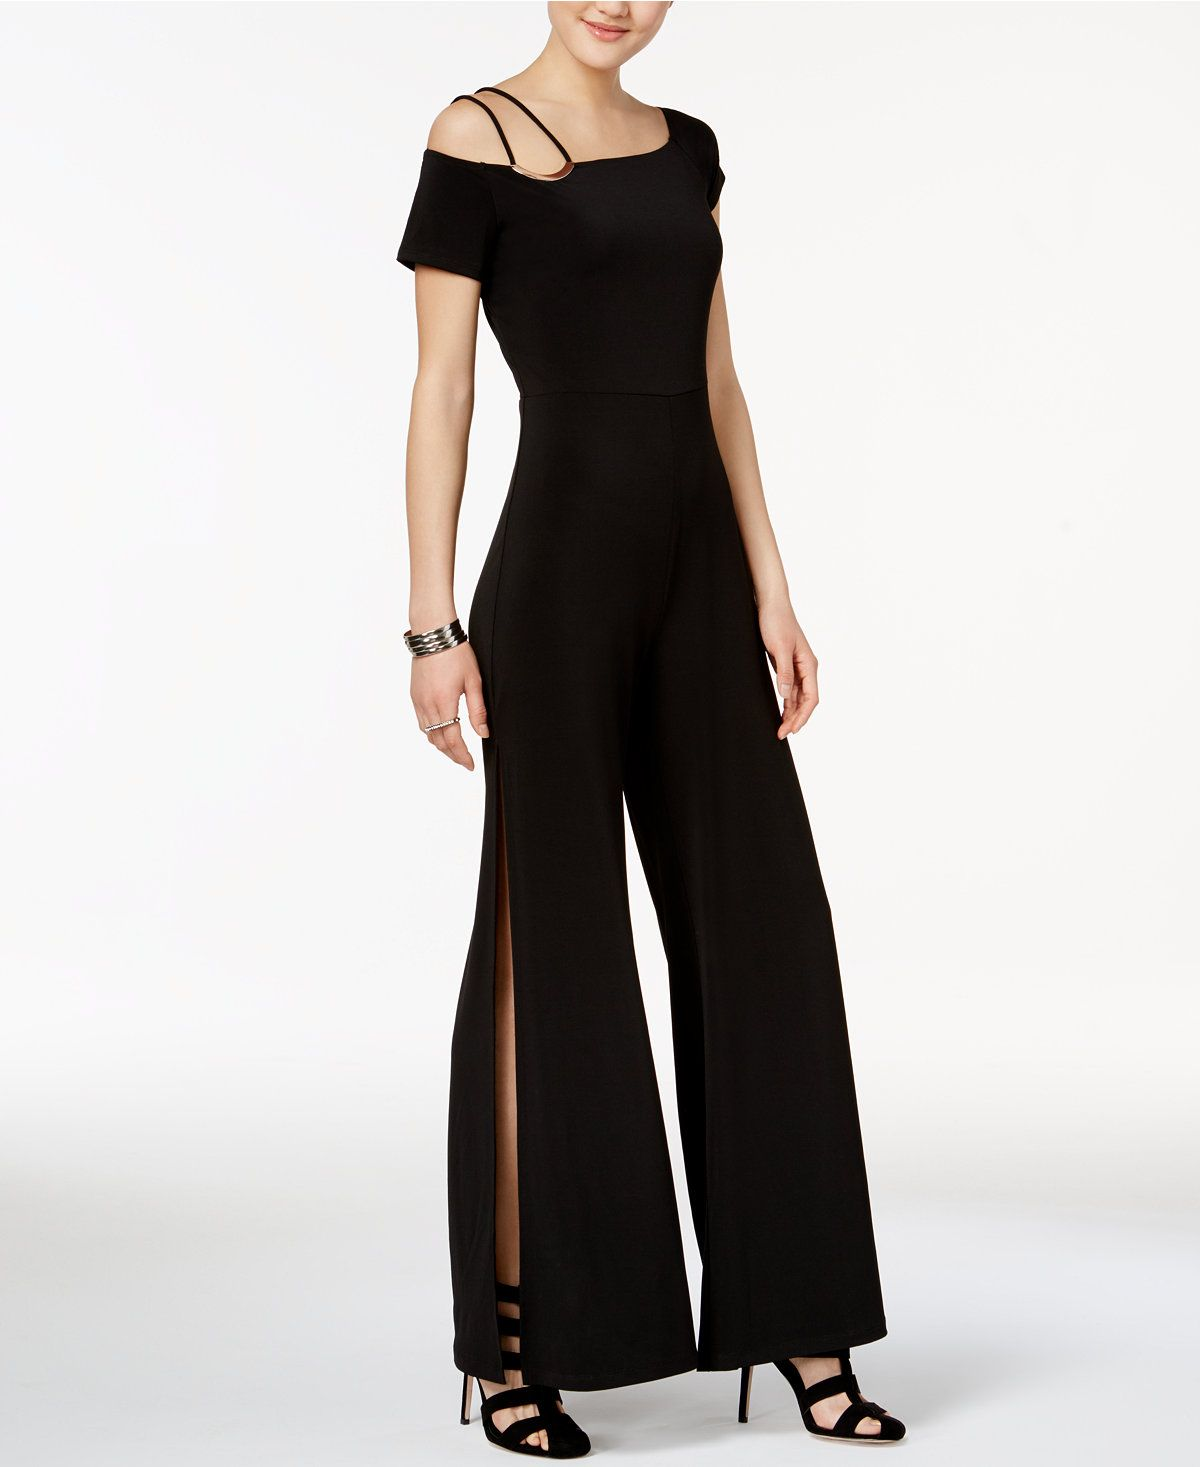 05e813a6d26f Veronica Split-Leg Hardware Jumpsuit - Jumpsuits   Rompers - Women - Macy s  -- GUESS  bold jumpsuit is a modern alternative to the little black dress  with a ...